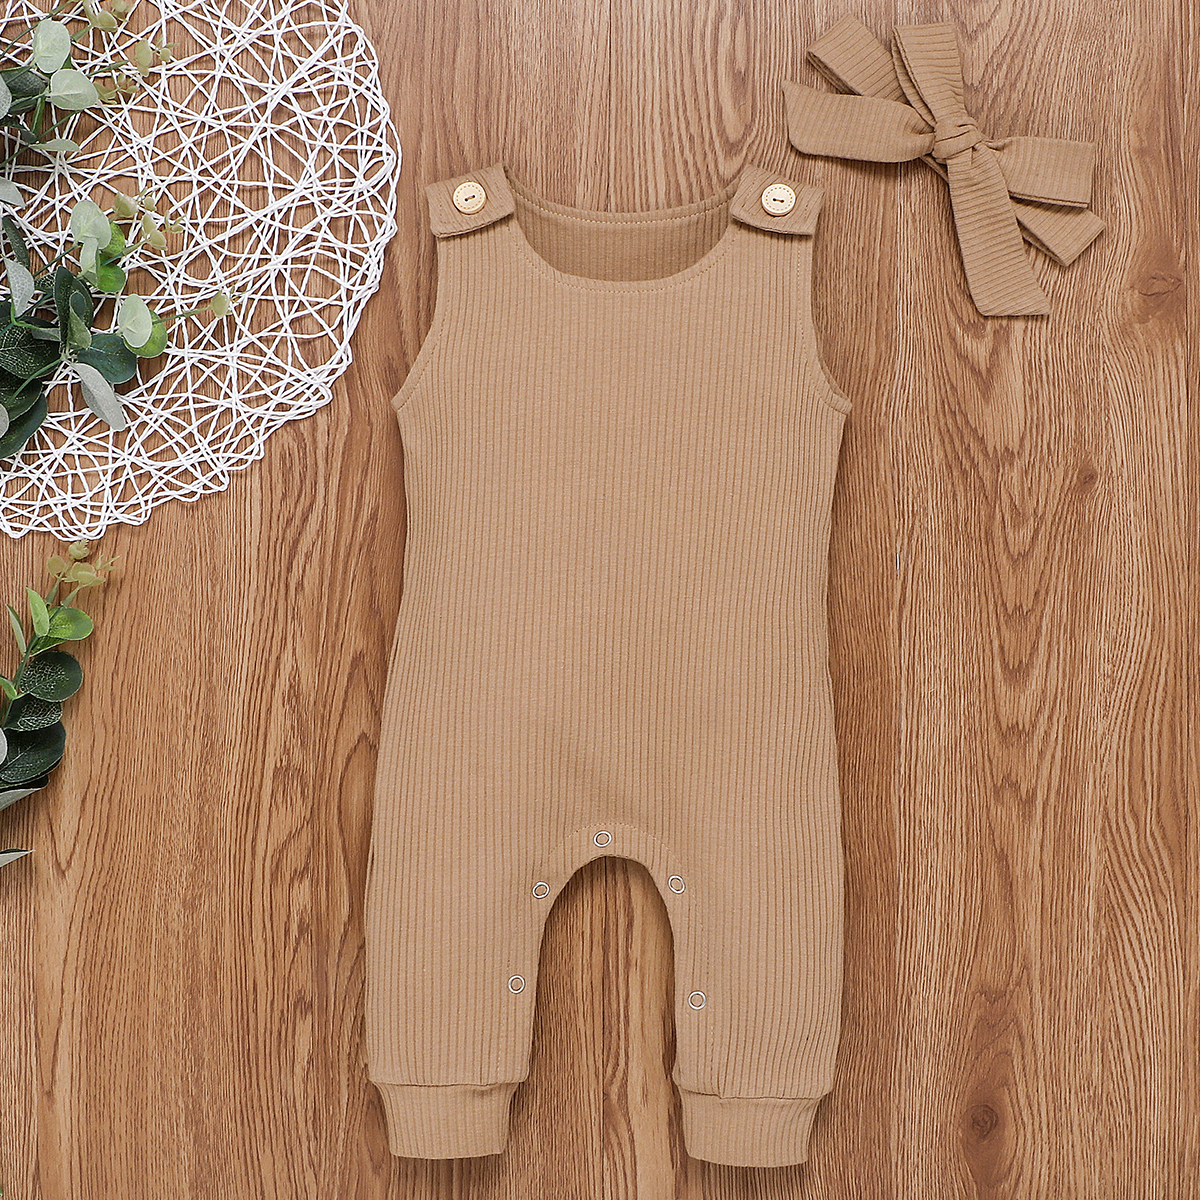 Pudcoco Newborn Baby Boy Girl Clothes Solid Color Sleeveless Knitted Cotton Romper Jumpsuit Headband 2Pcs Outfits Clothes